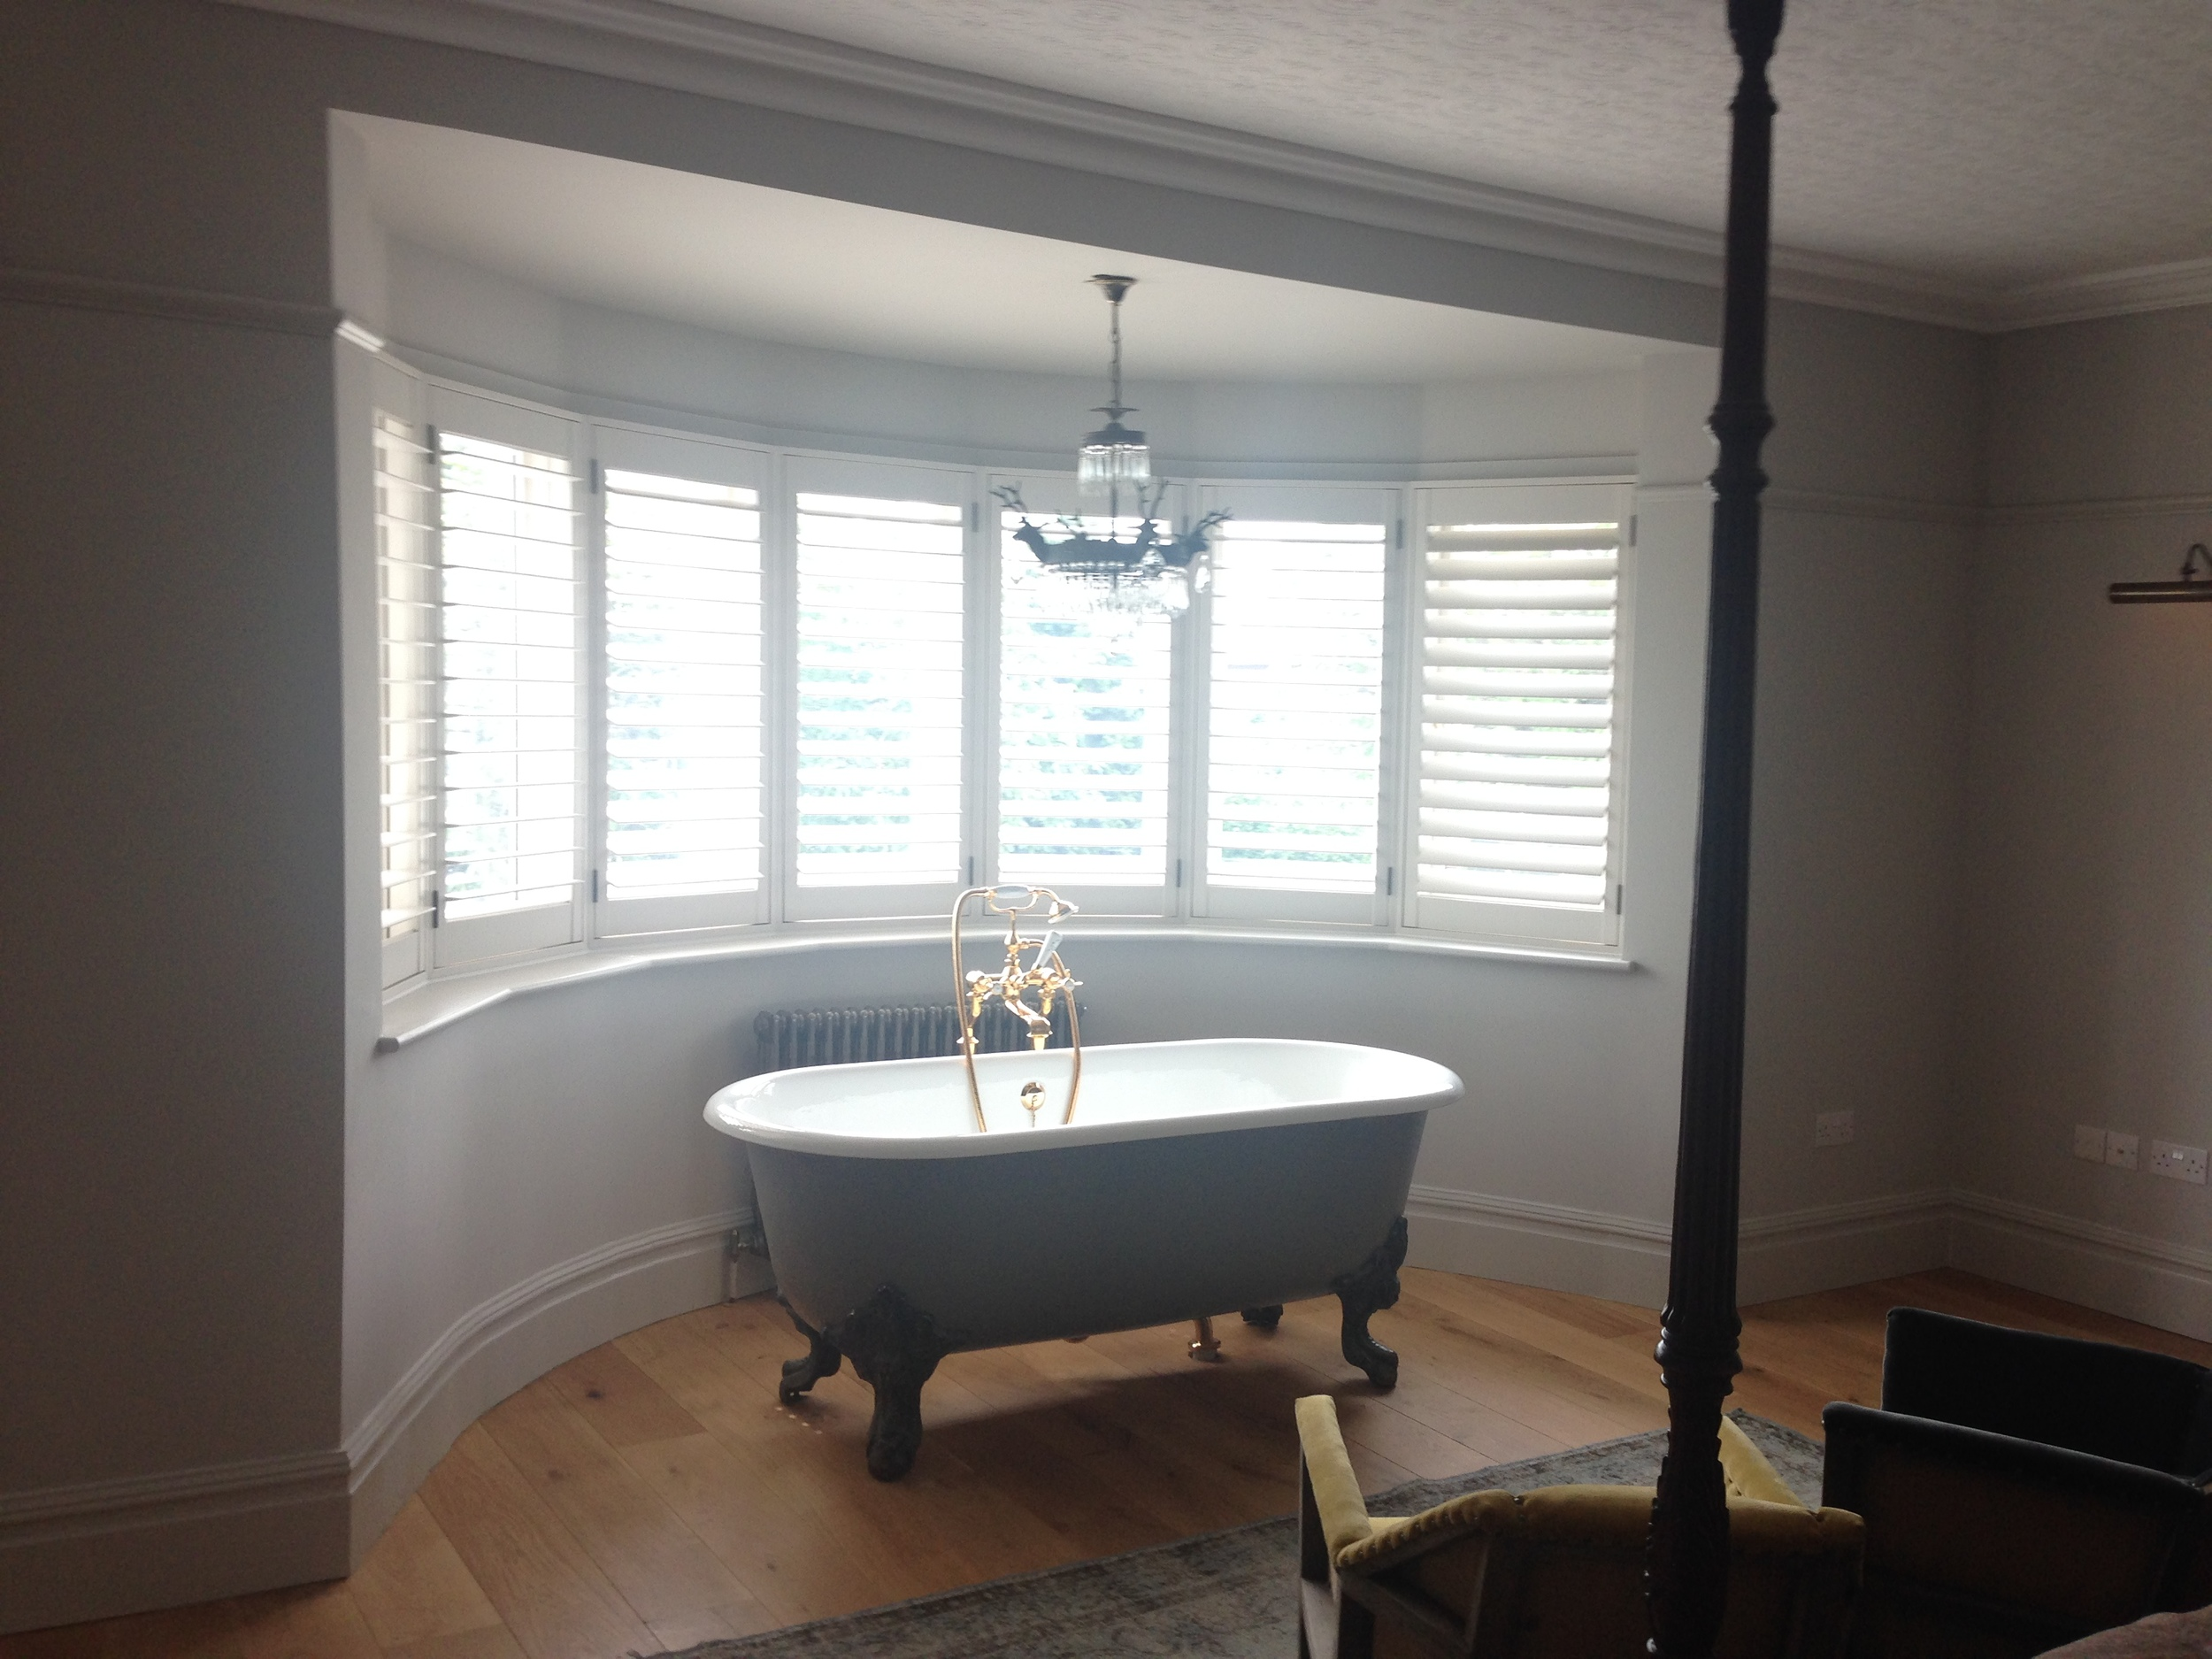 House 5 - Guest bedroom with bath in bay window